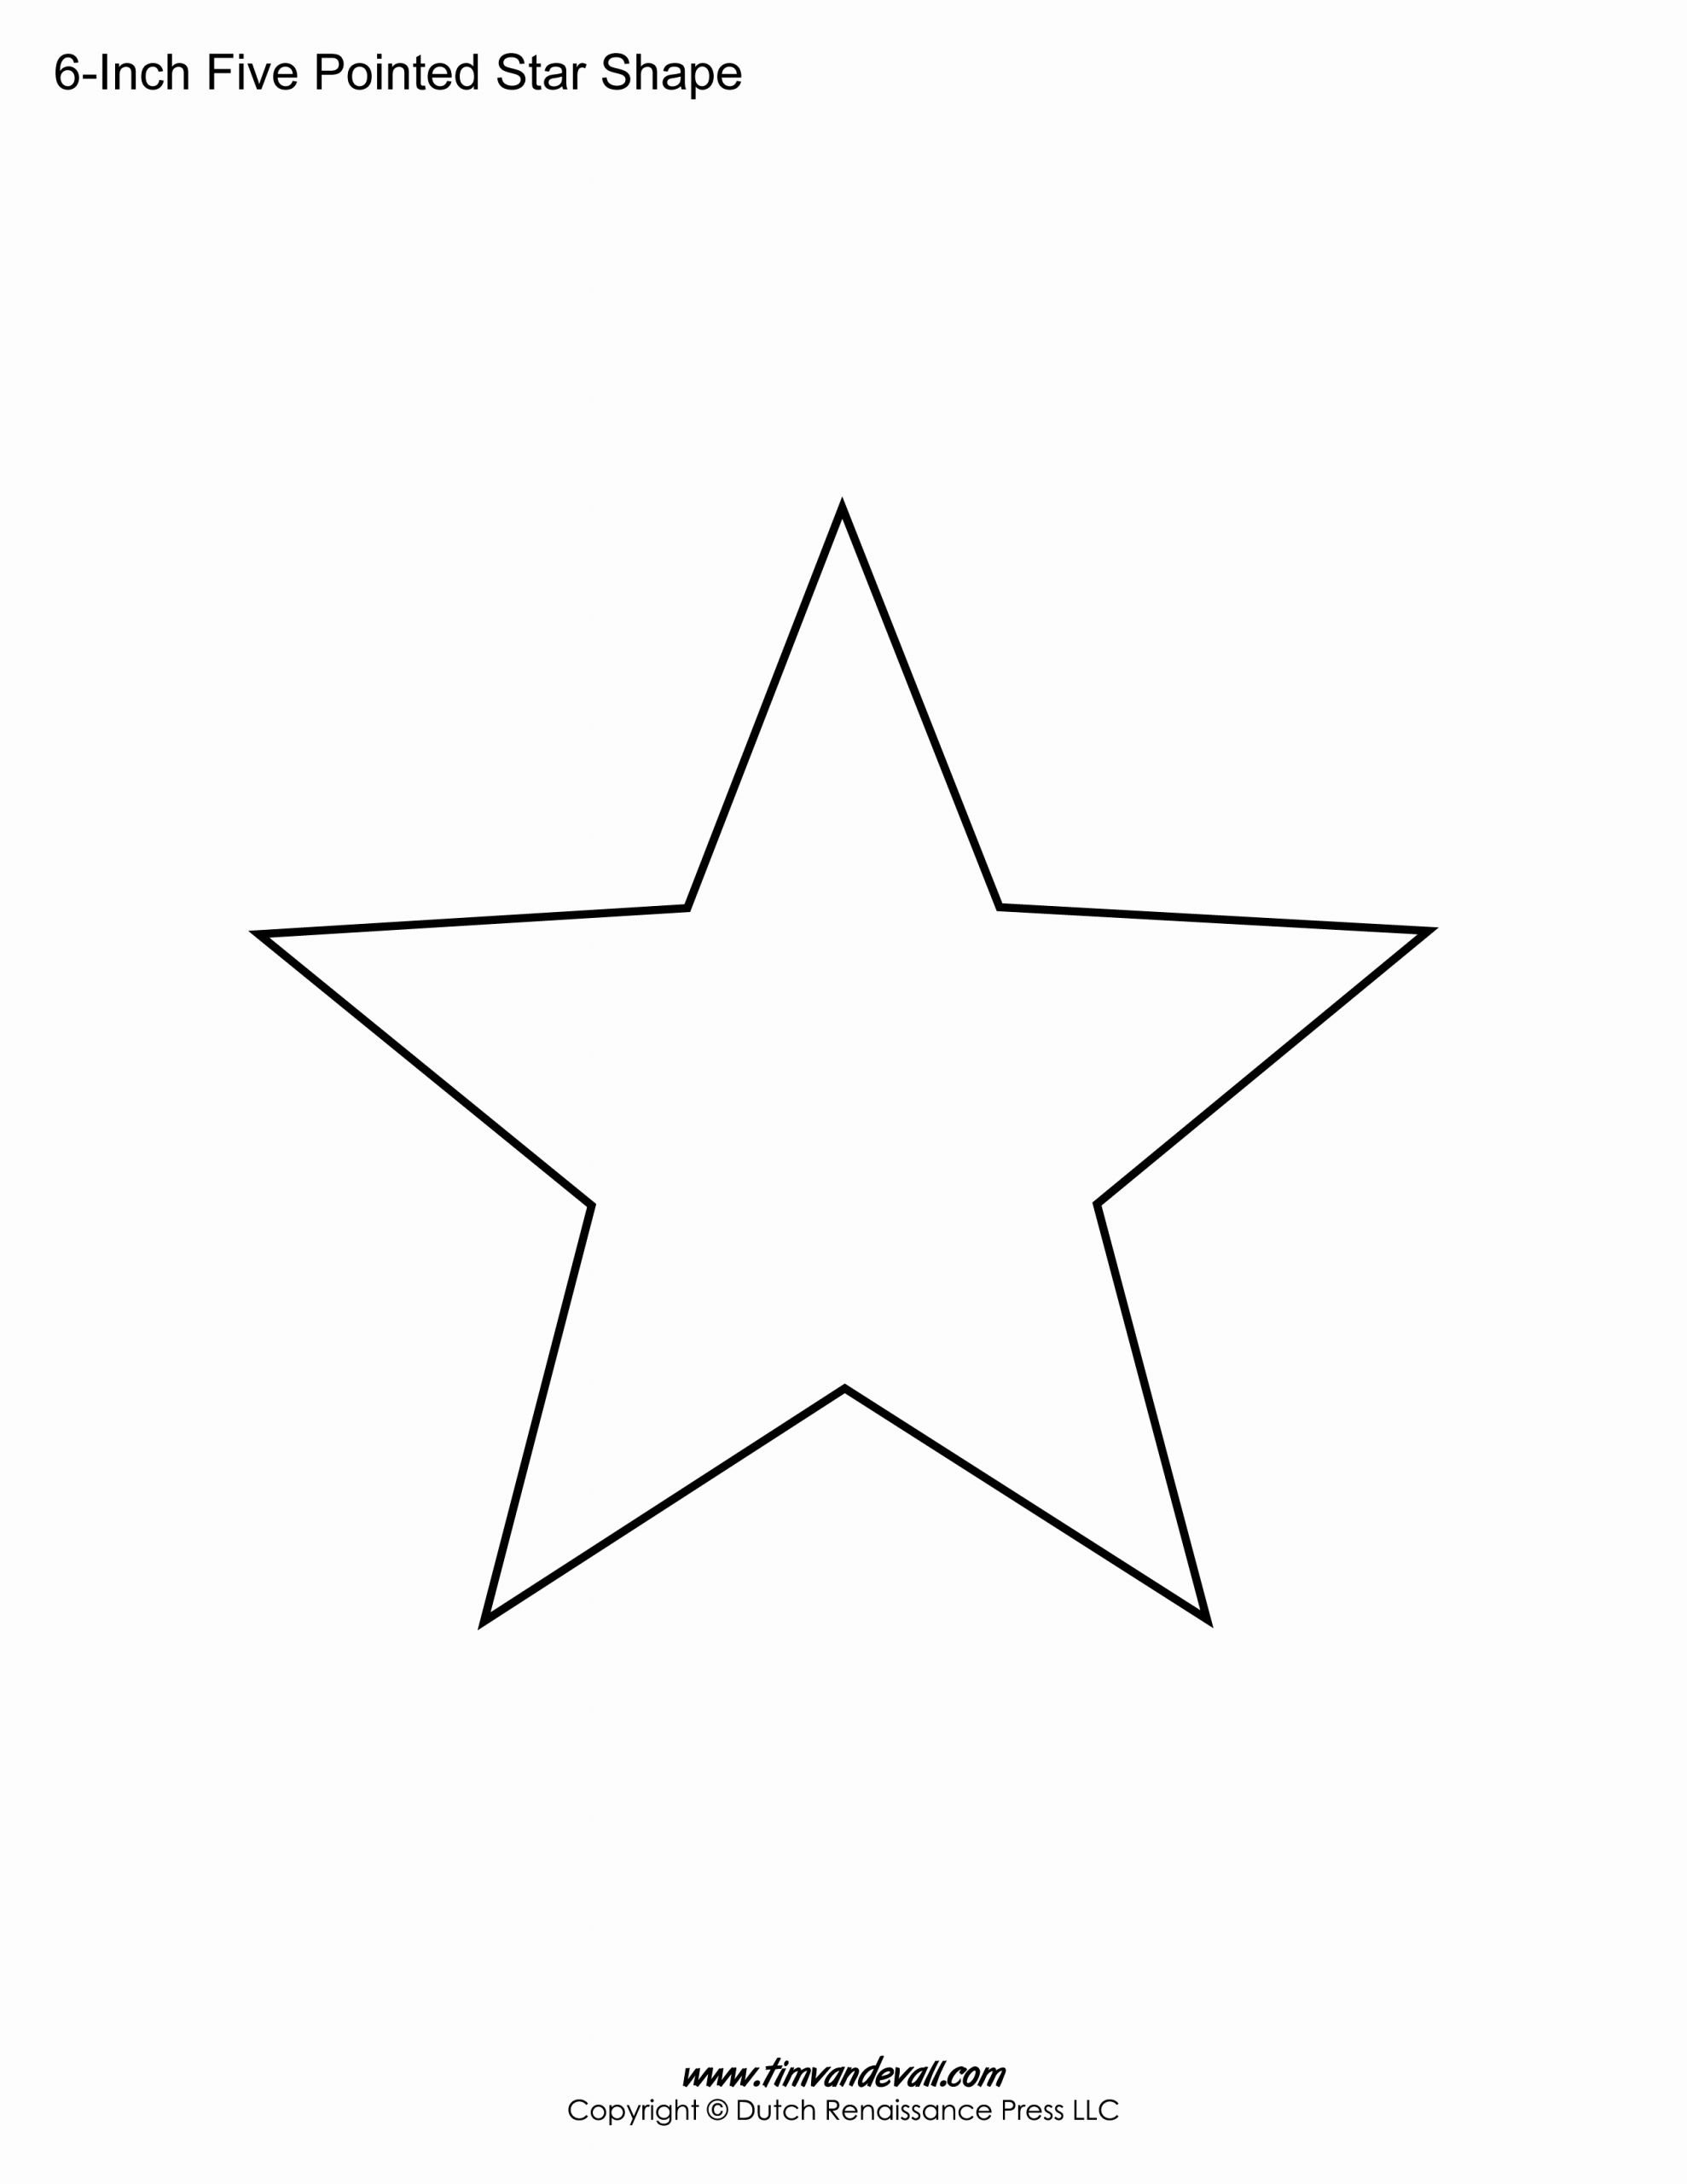 Star Template Printable Free Unique Printable Five Pointed Star Templates Blank Shape Pdfs